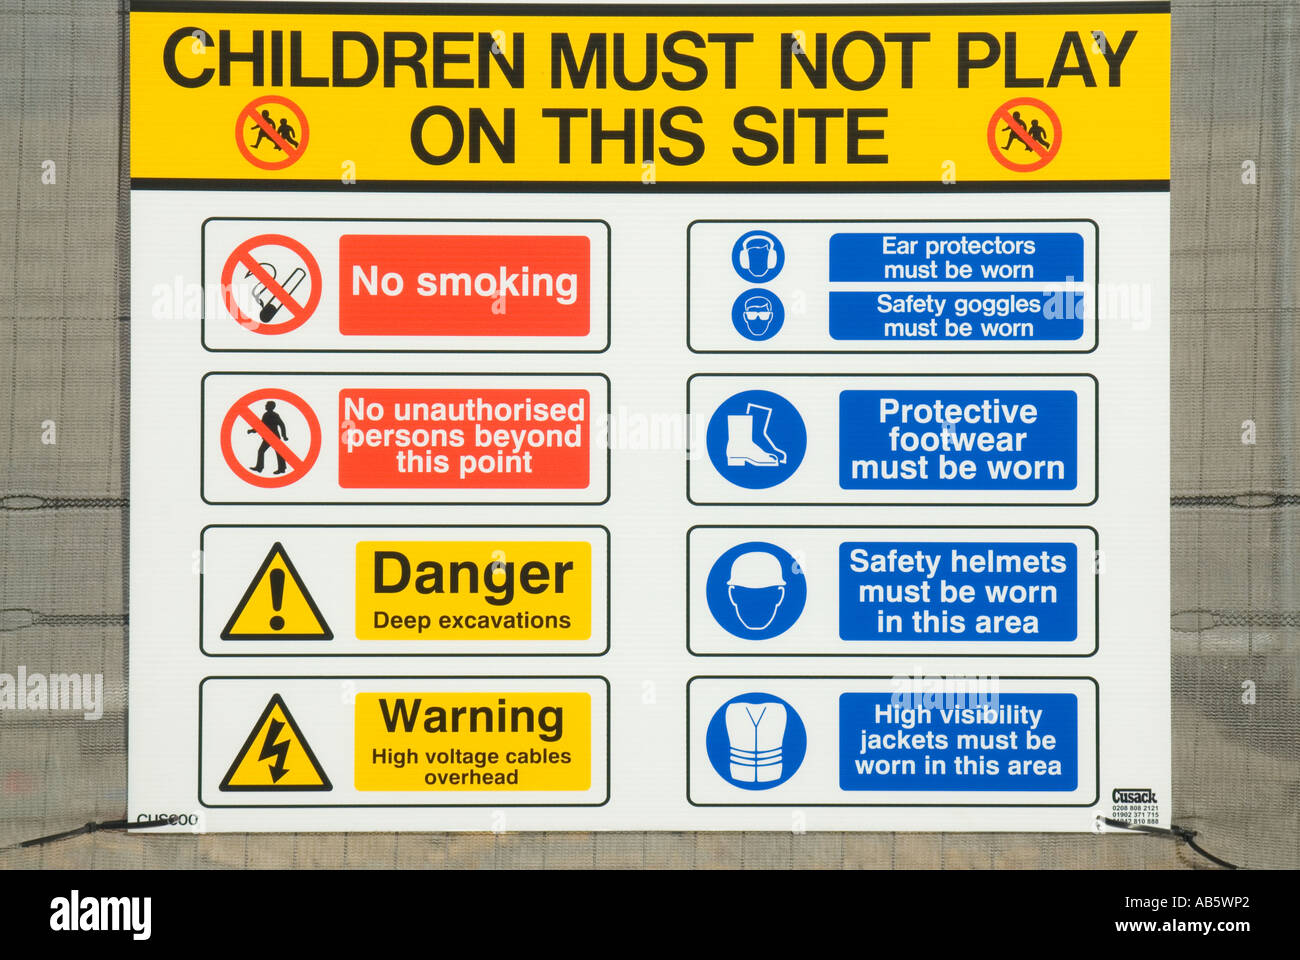 Sign on fence outside building site warning children and listing site regulations - Stock Image